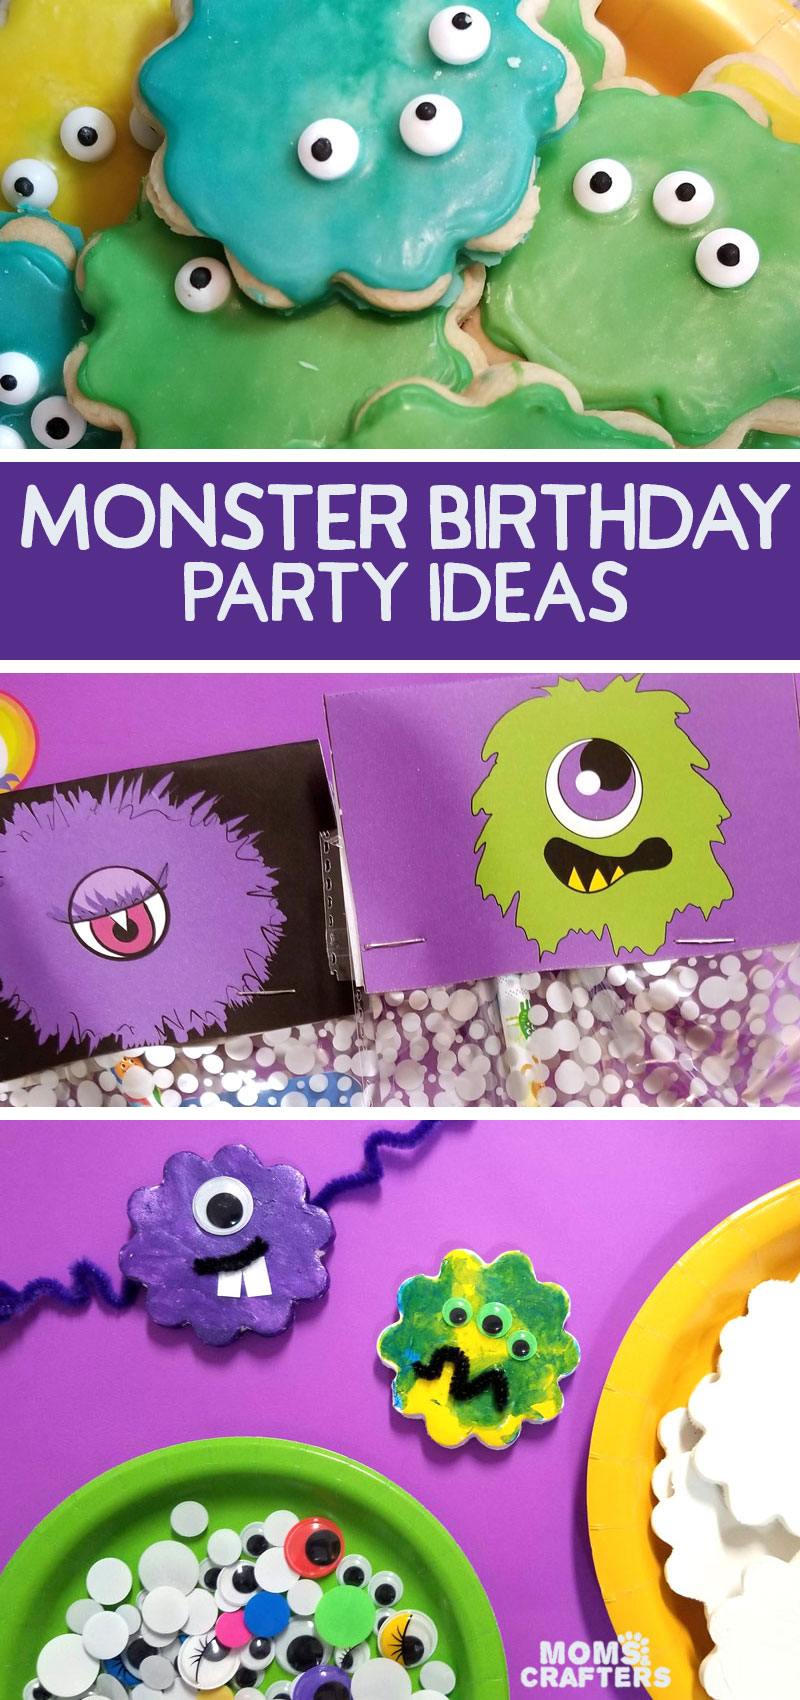 Click for the ultimate list of monster birthday party ideas for boys or girls! From party favors to decorations and food ideas, I have your birthday party theme covered!